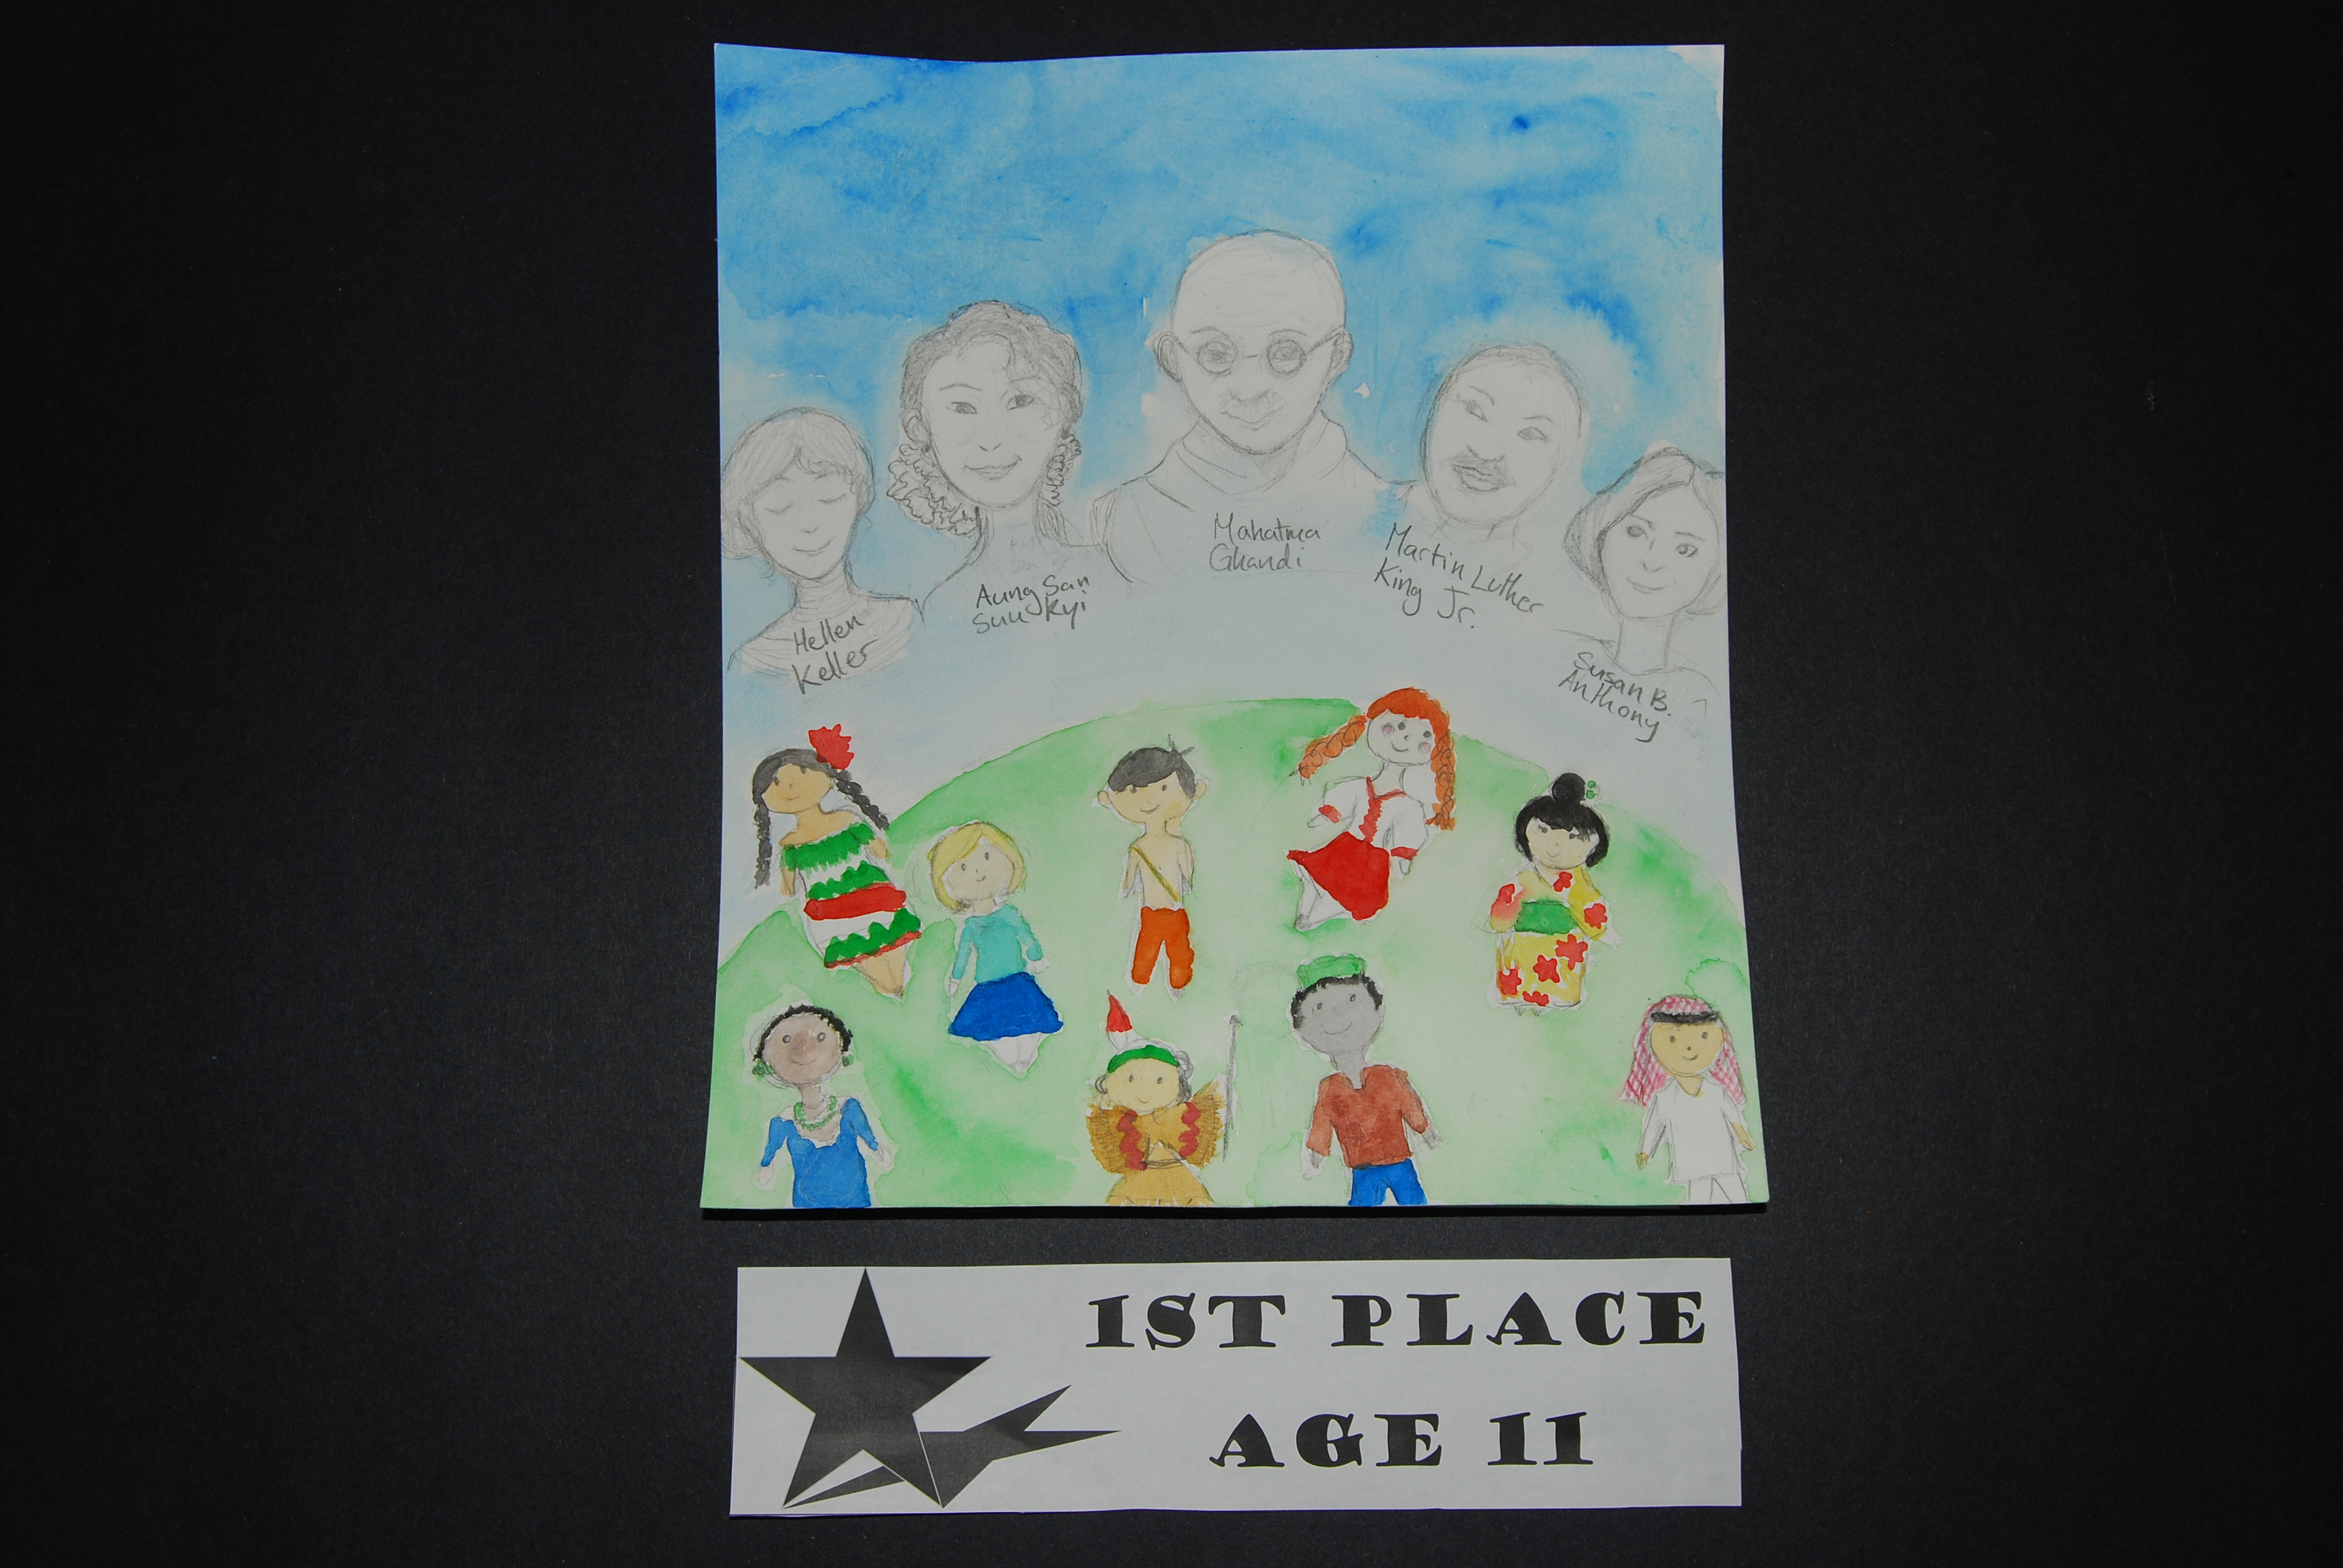 Drawing Peace 1st Place Age 11